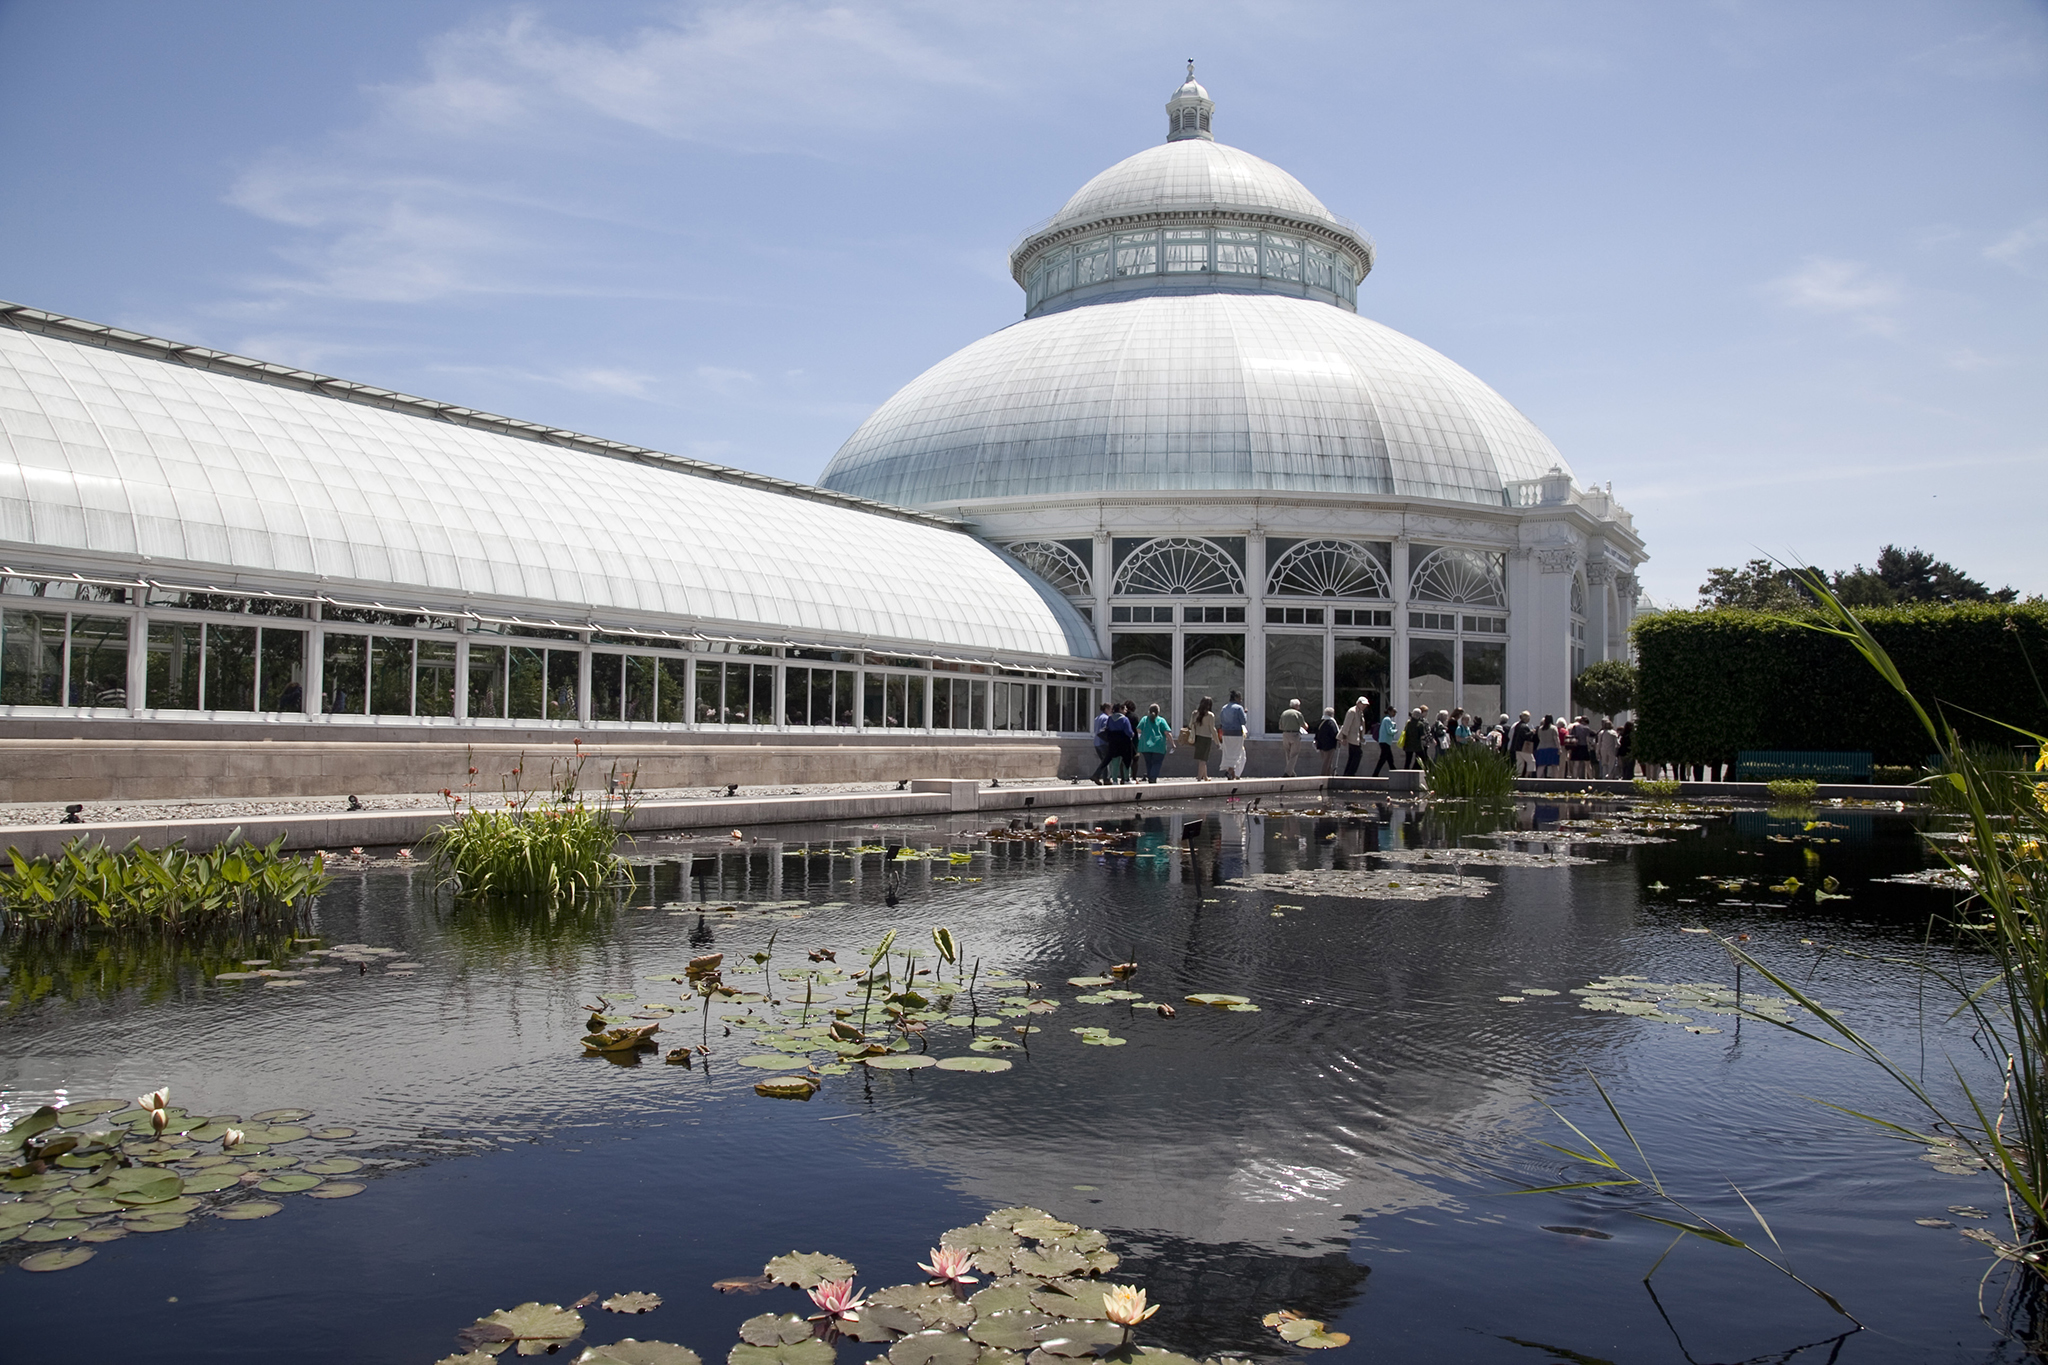 The New York Botanical Garden guide